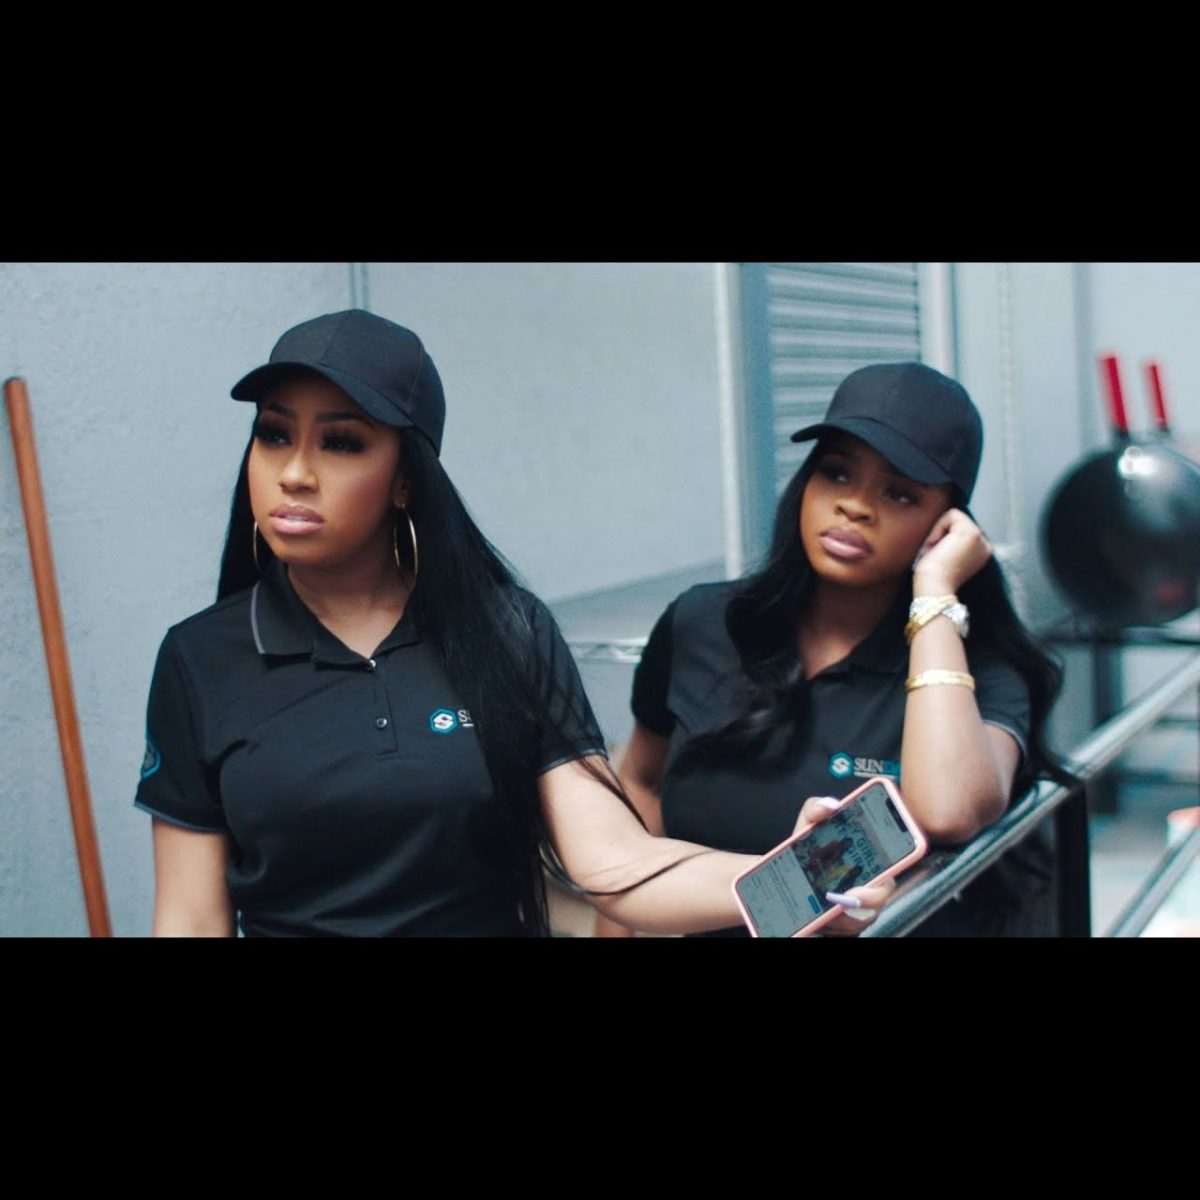 City Girls - Jobs (Thumbnail)